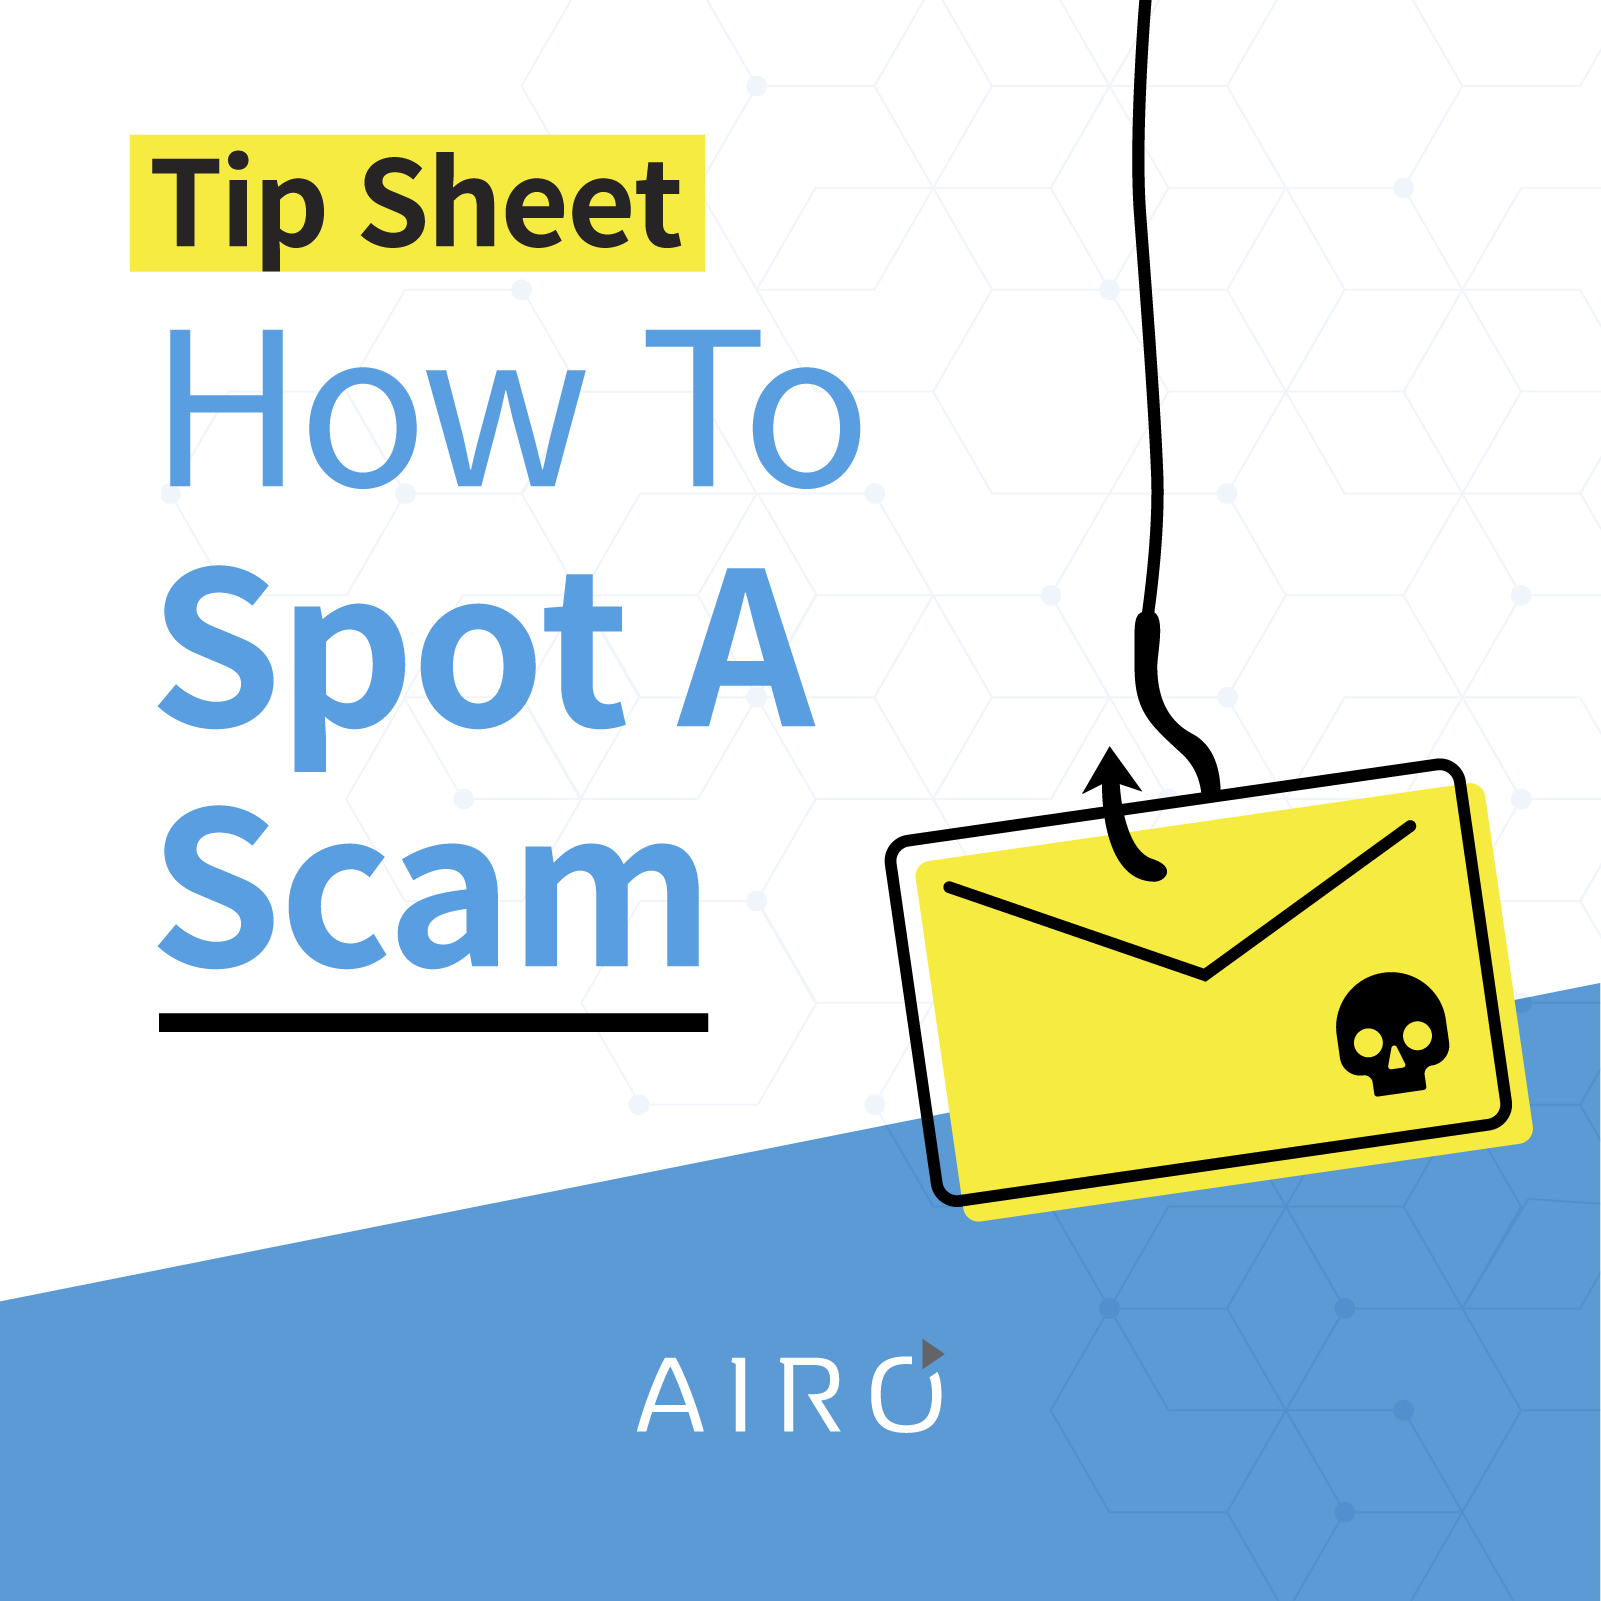 Free Tipsheet: How to Spot a Scam